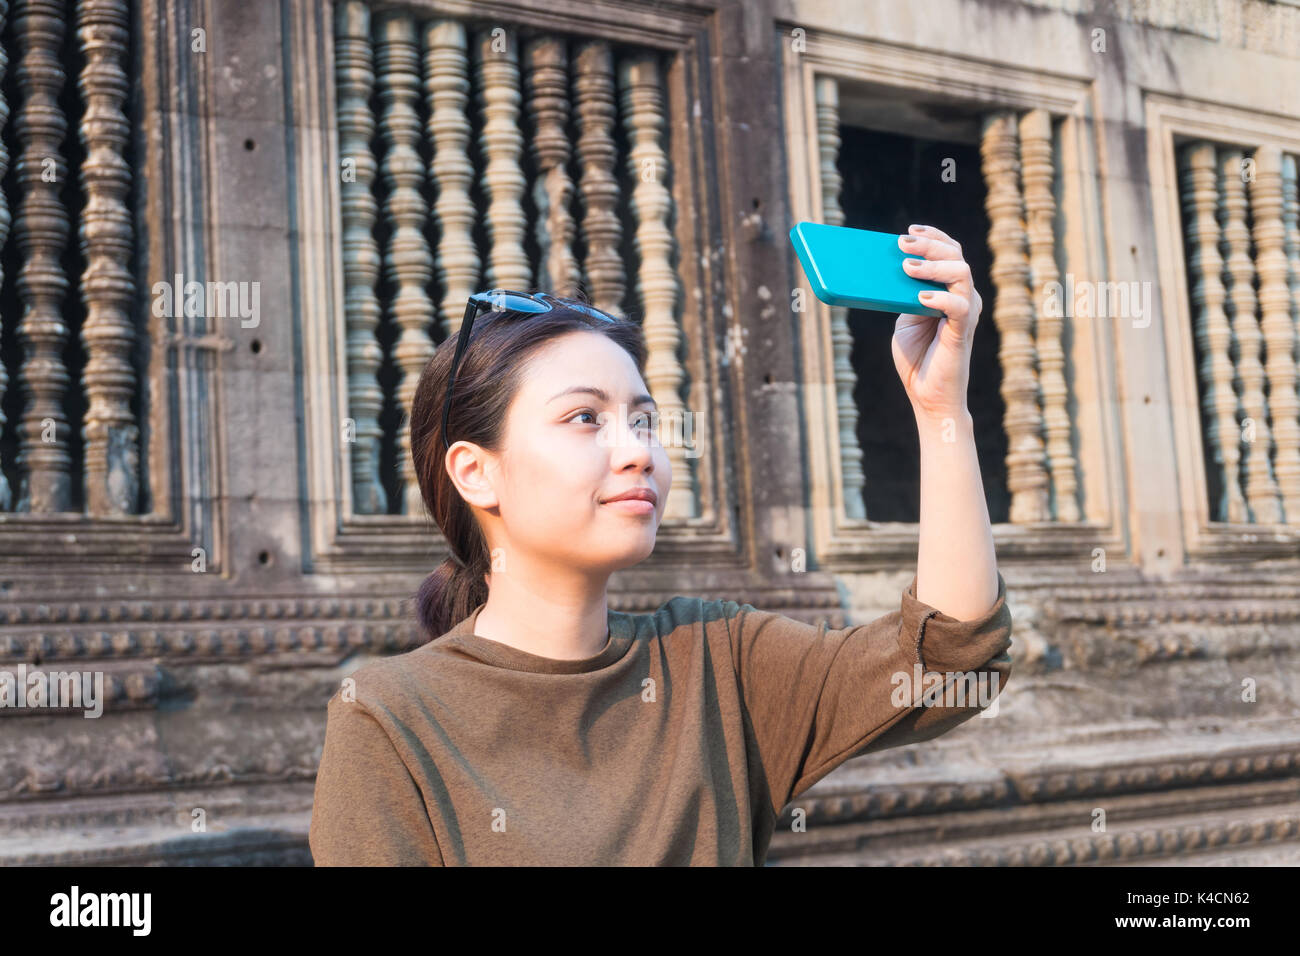 Female traveler selfie with her smartphone in angkor wat siem reap cambodia - Stock Image